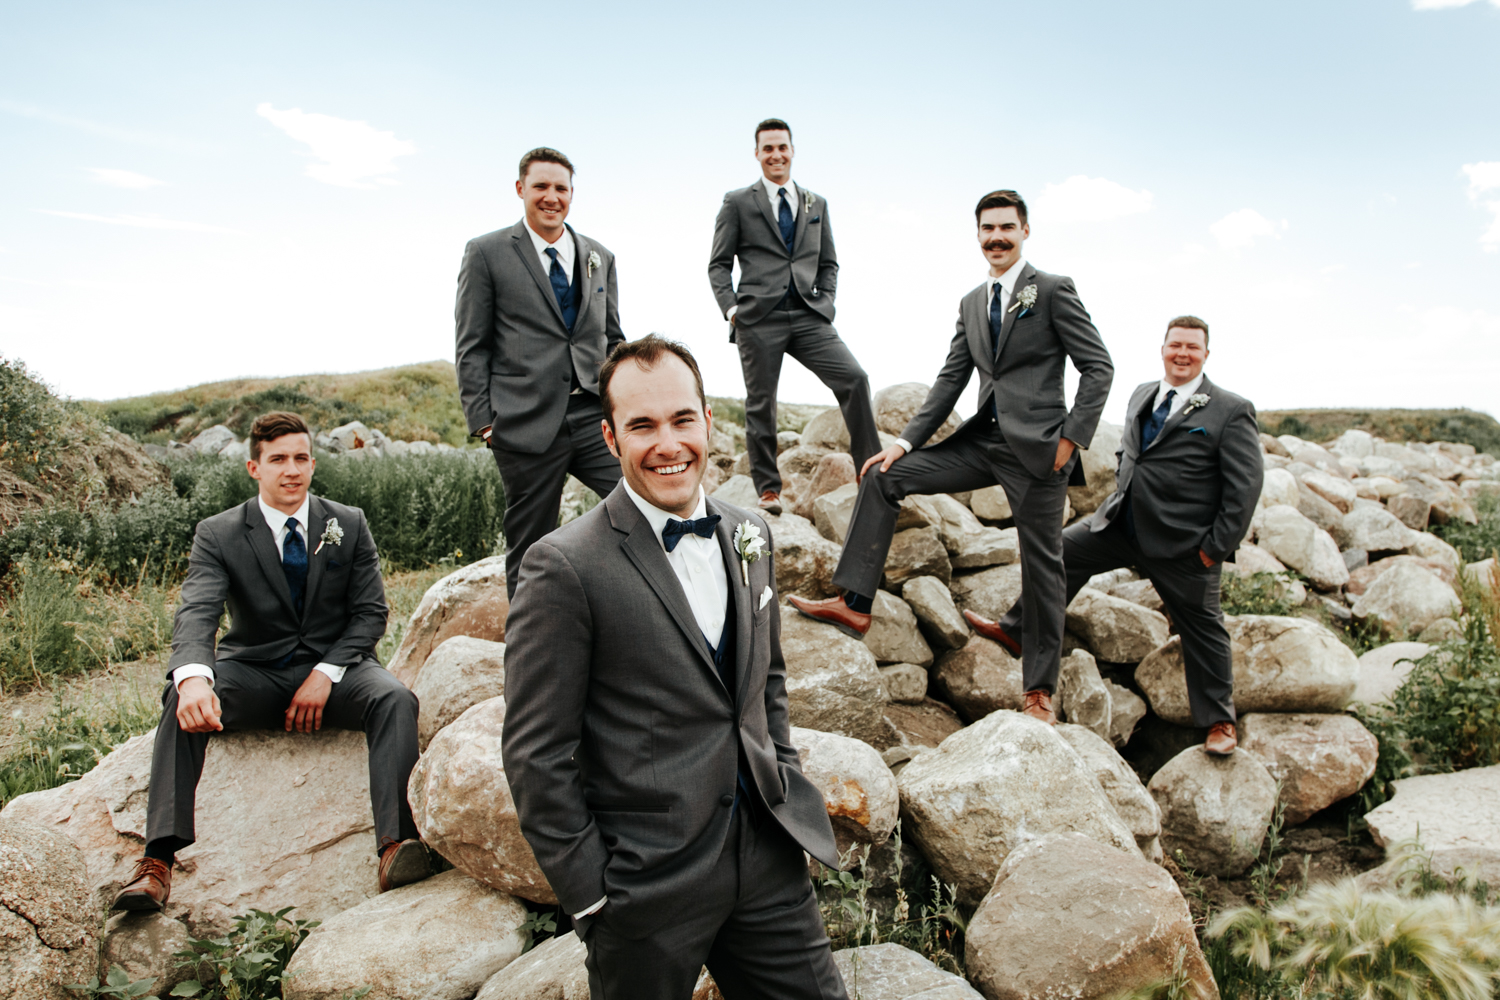 lethbridge-photographer-readymade-community-centre-wedding-coaldale-bailey-joel-picture-image-photo-40.jpg